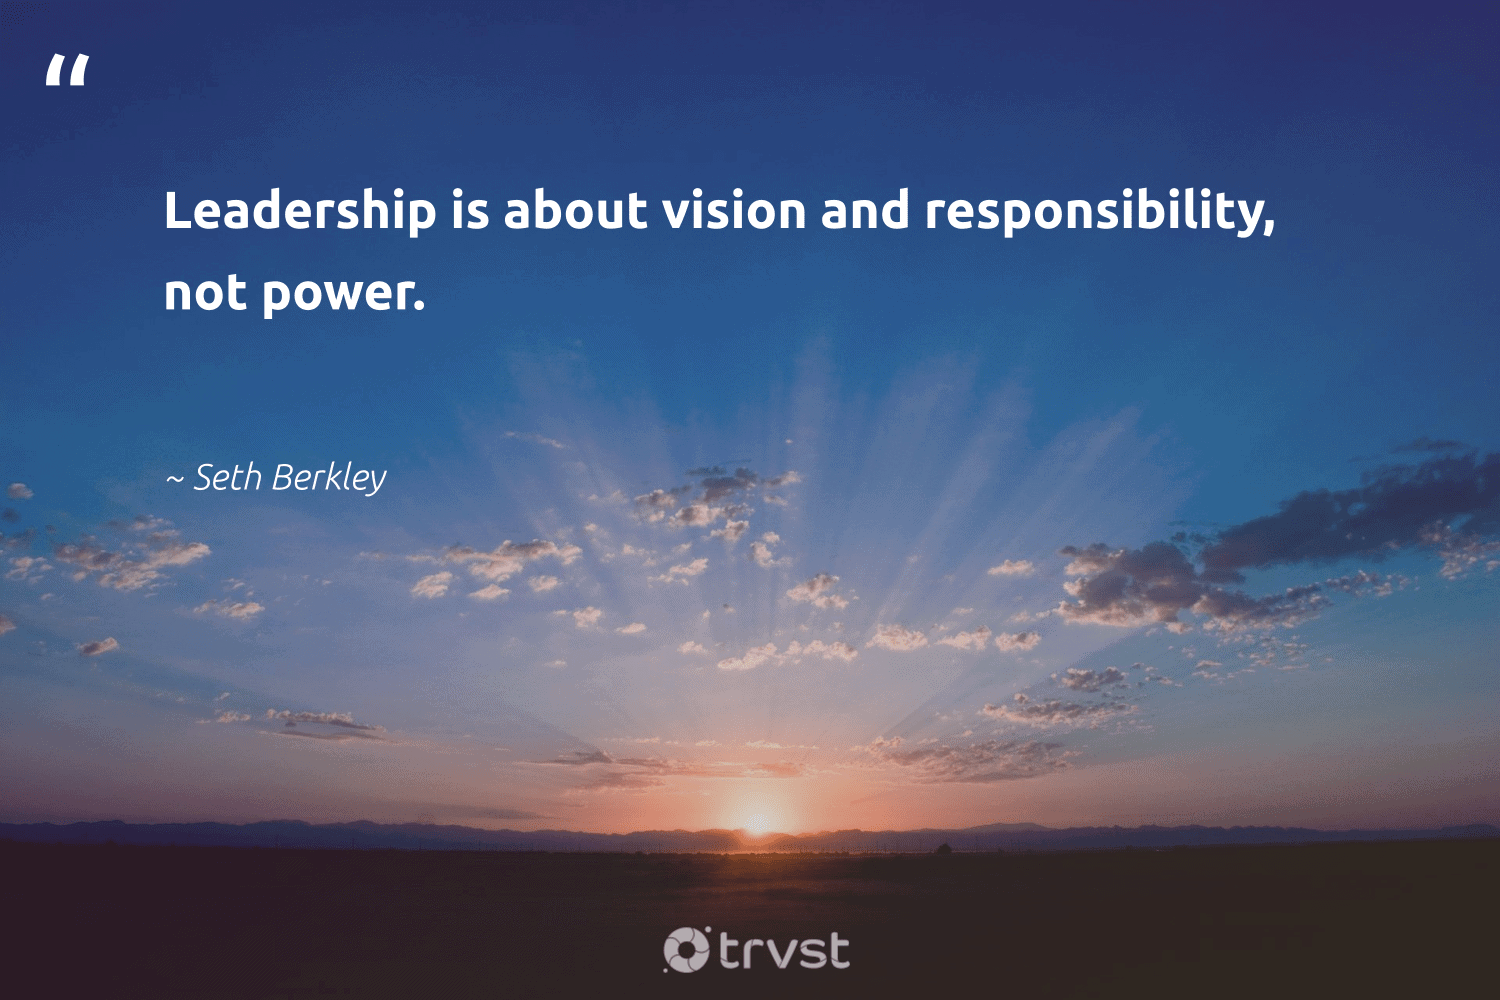 """Leadership is about vision and responsibility, not power.""  - Seth Berkley #trvst #quotes #leadership #leadershipskills #nevergiveup #futureofwork #dogood #leadershipdevelopment #softskills #begreat #socialimpact #leadershipqualities"